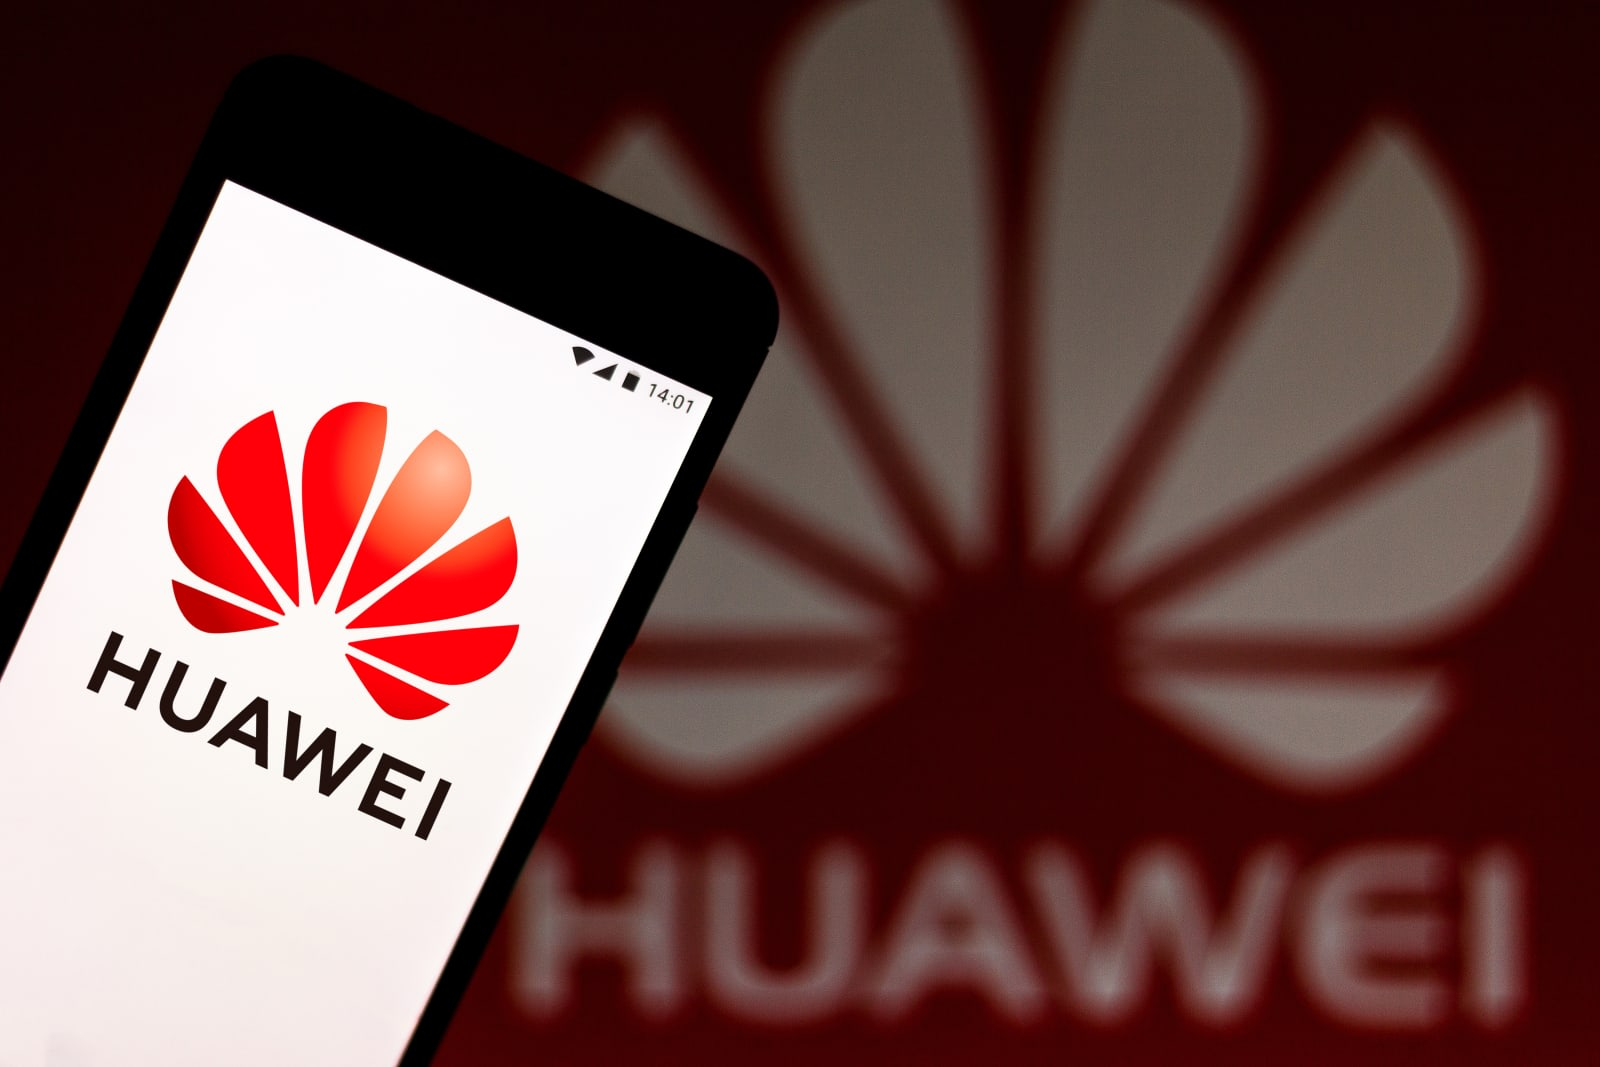 Huawei CEO: Entity List ban is 'the start of the US falling behind'